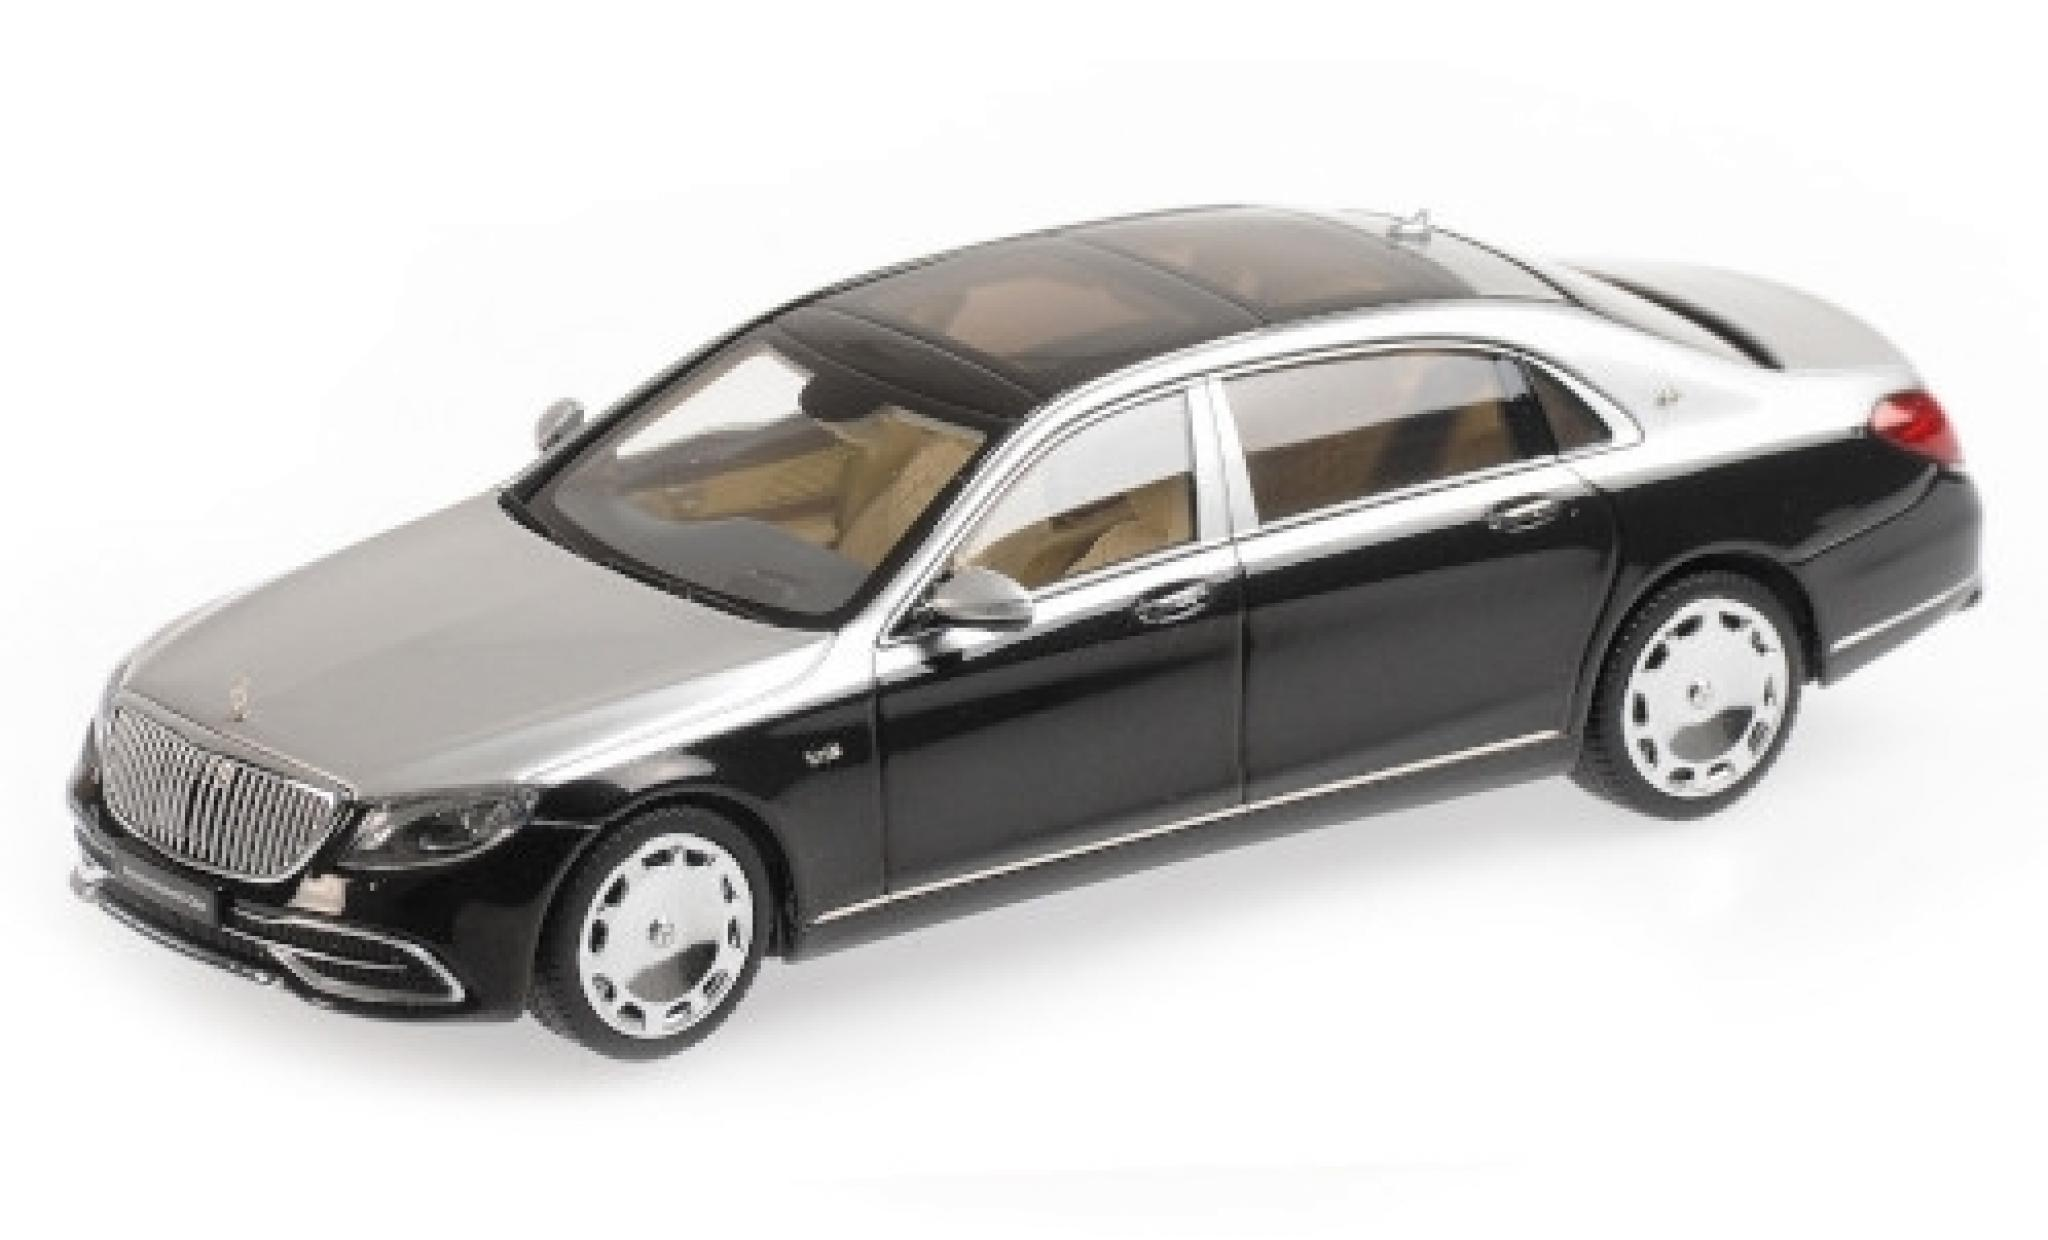 Mercedes Classe S 1/43 Almost Real Maybach S650 (V222) metallise noire/grise 2019